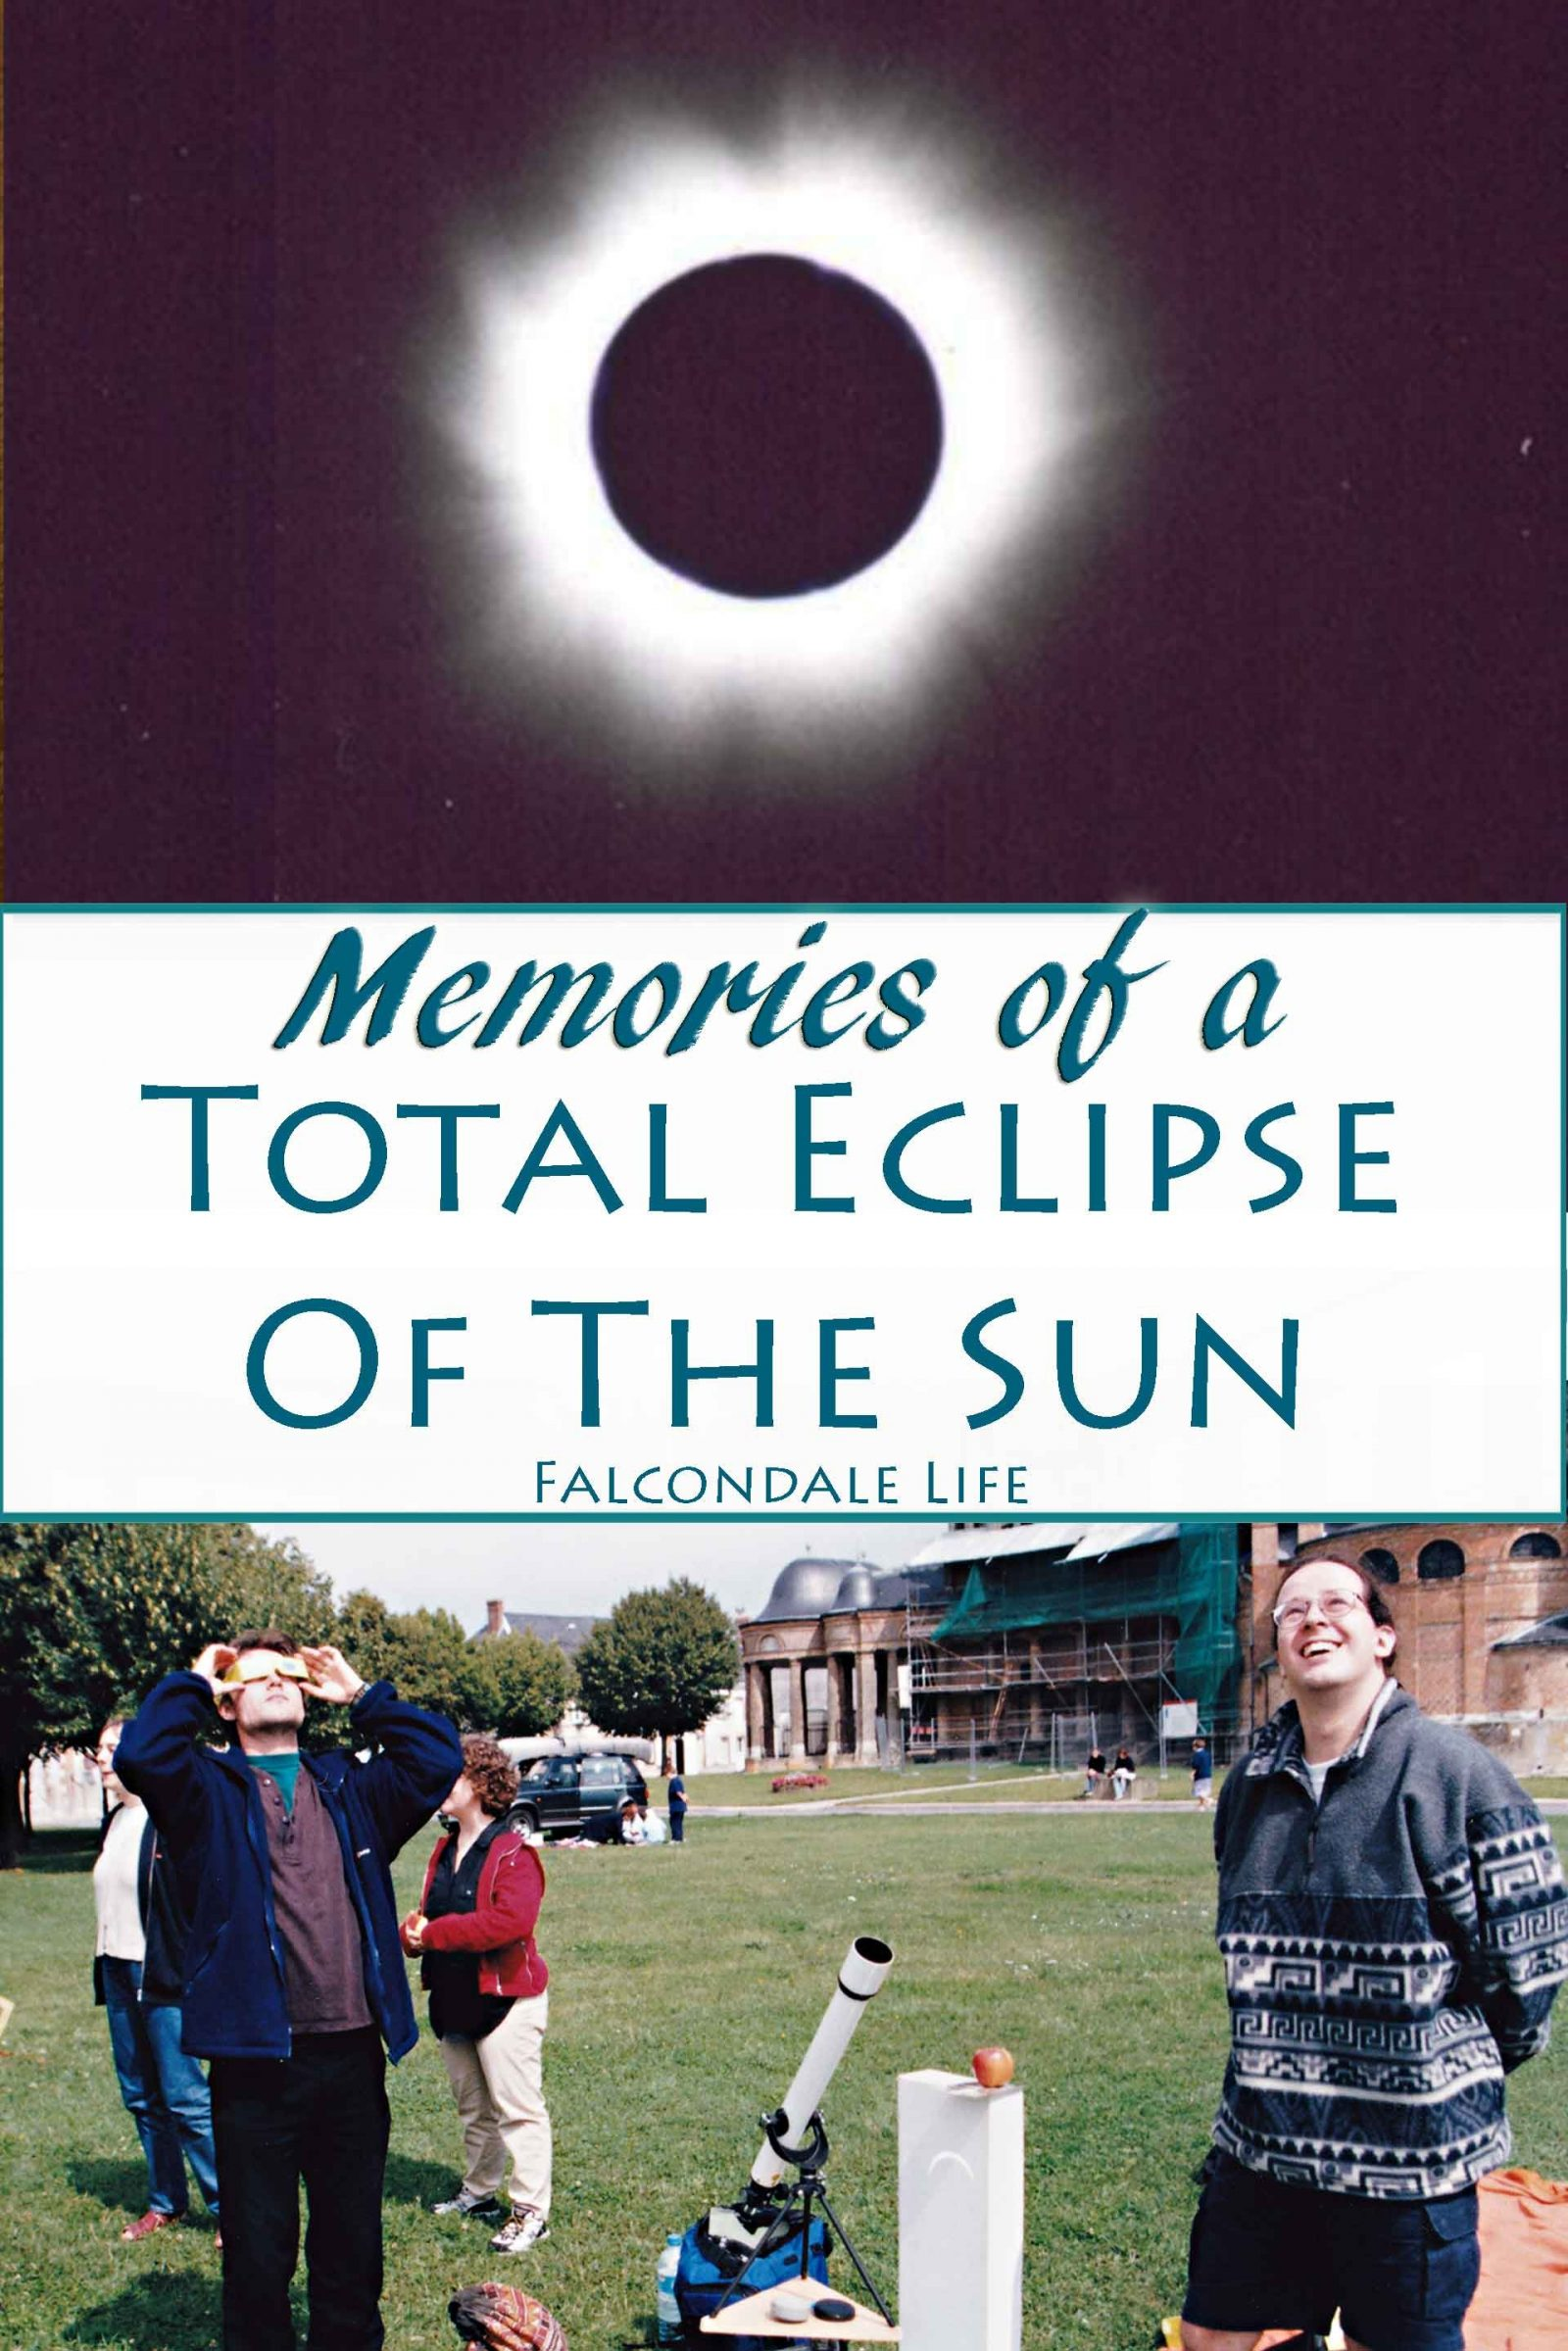 Memories of a total eclipse on Falcondale Life blog. Friends share memories of watching a total eclipse of the sun, France 1999. How it feels to experience totality in a solar eclipse and enjoy local culture.